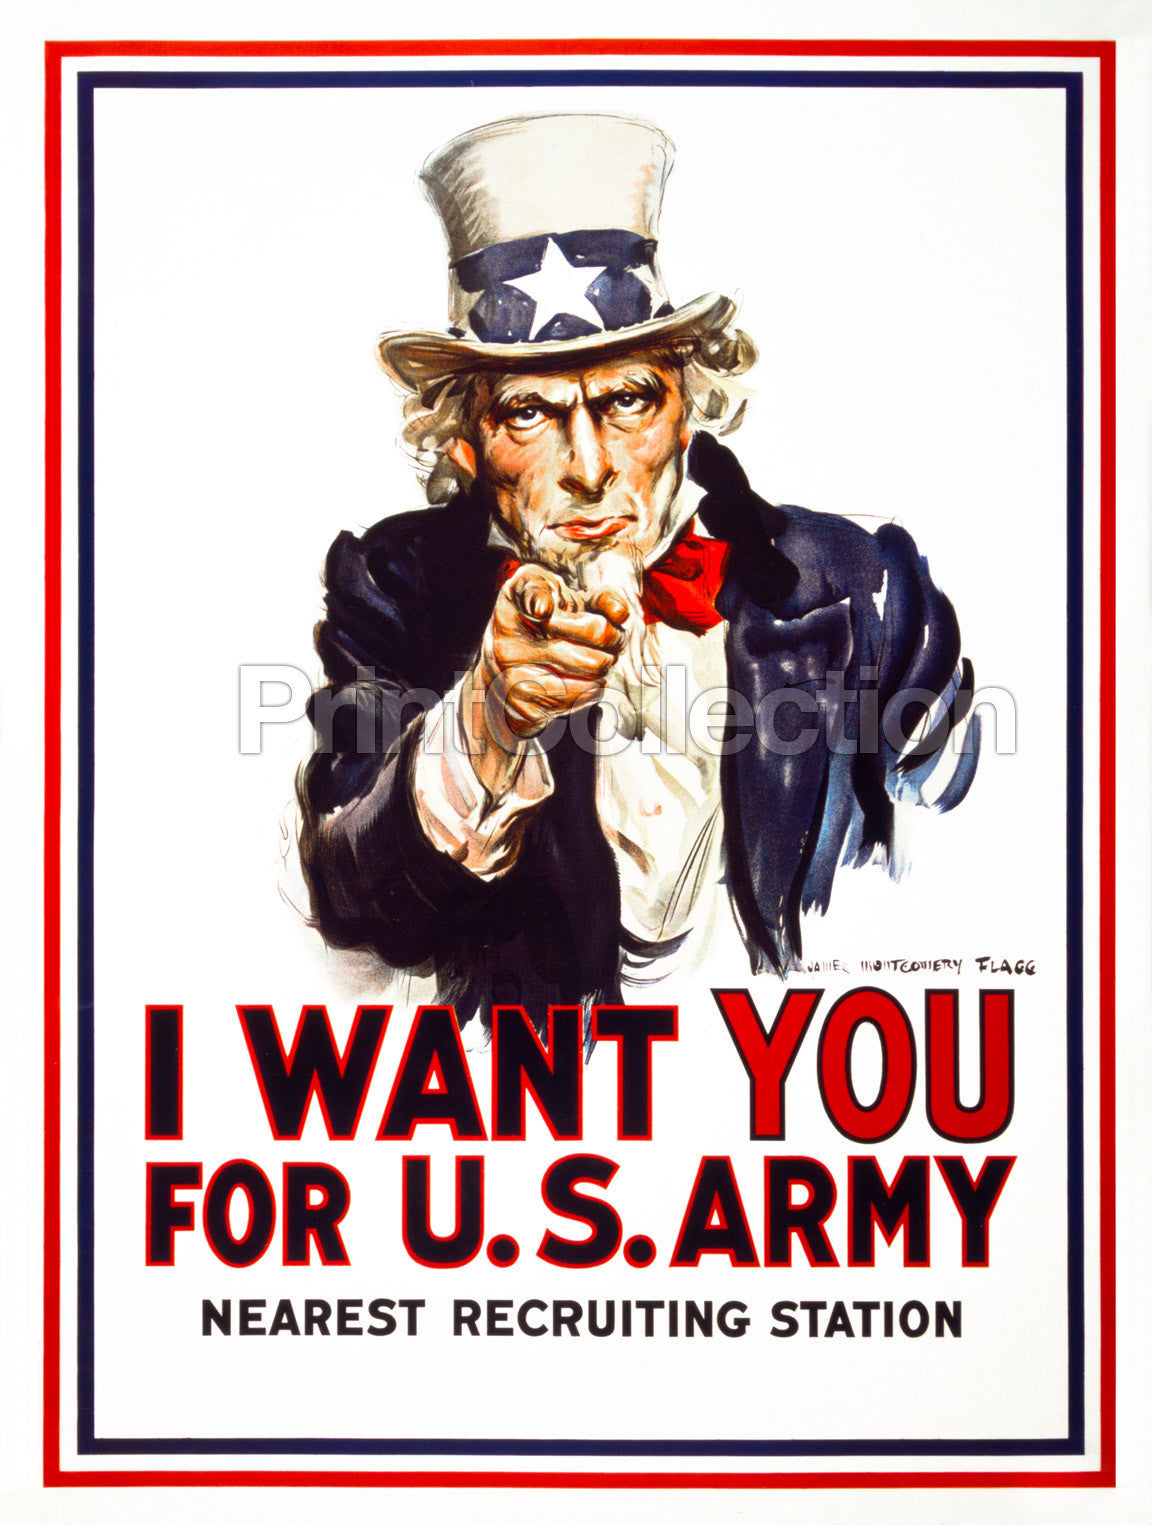 i-want-you-for-us-army.jpeg?v=1482569359